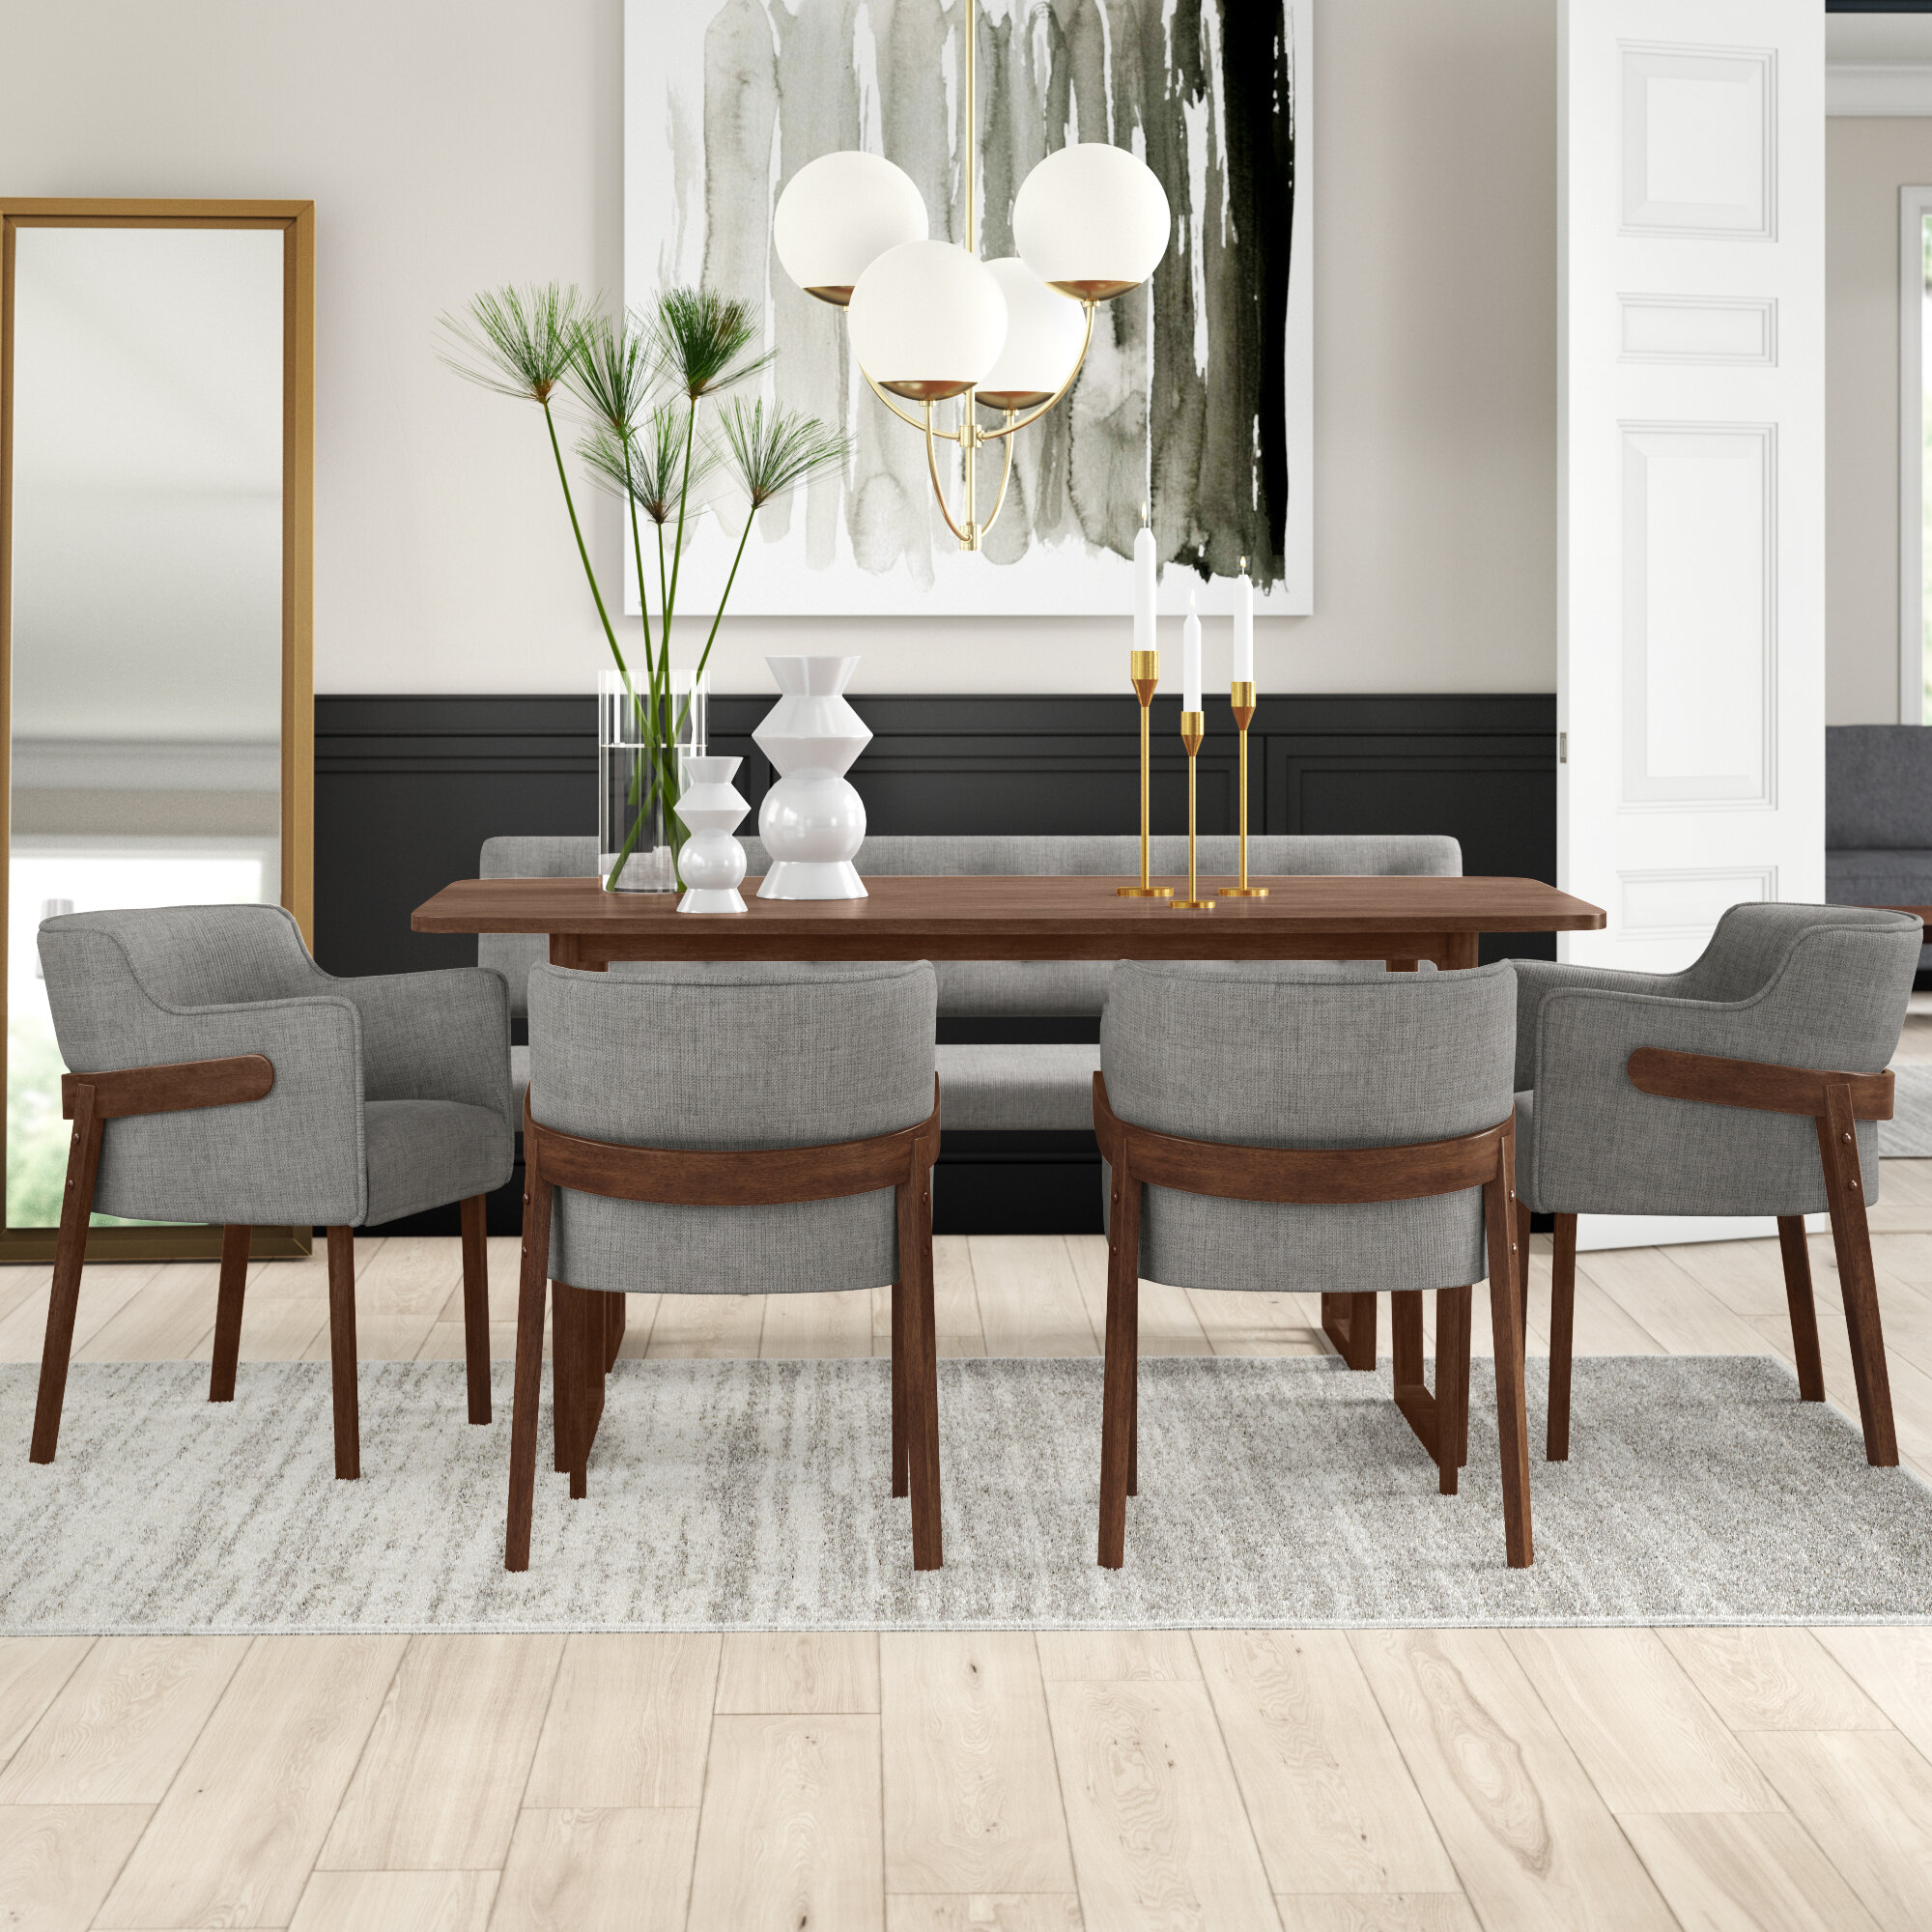 Mukai 6 Piece Dining Set Pertaining To Best And Newest Mukai 5 Piece Dining Sets (Photo 2 of 20)